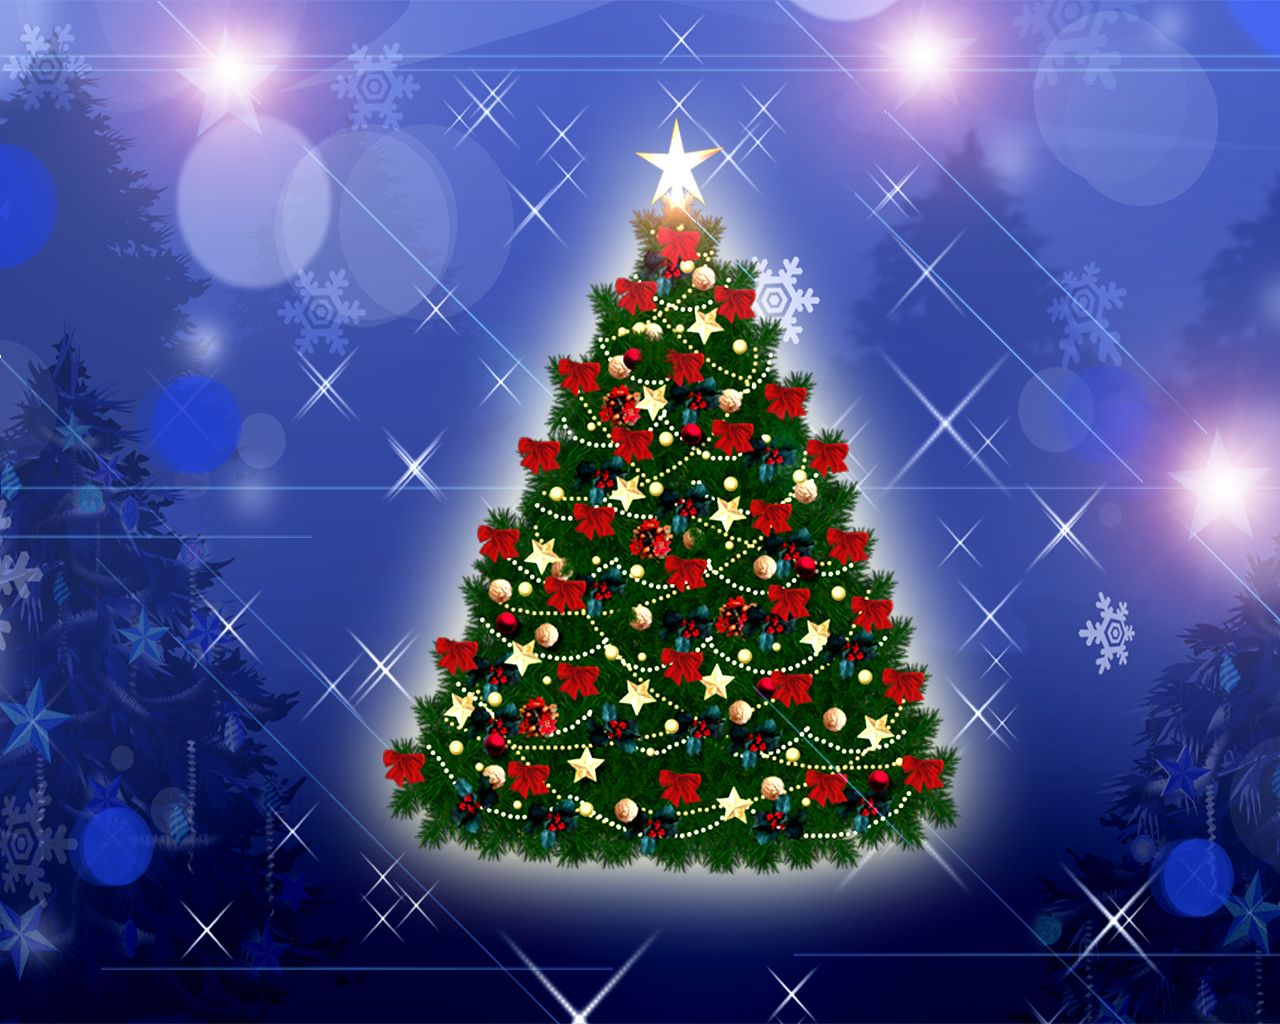 1067 Christmas Tree Animated Background Wallpaper Walops Com Christmas Wallpaper Free Christmas Tree Wallpaper Christmas Tree Images